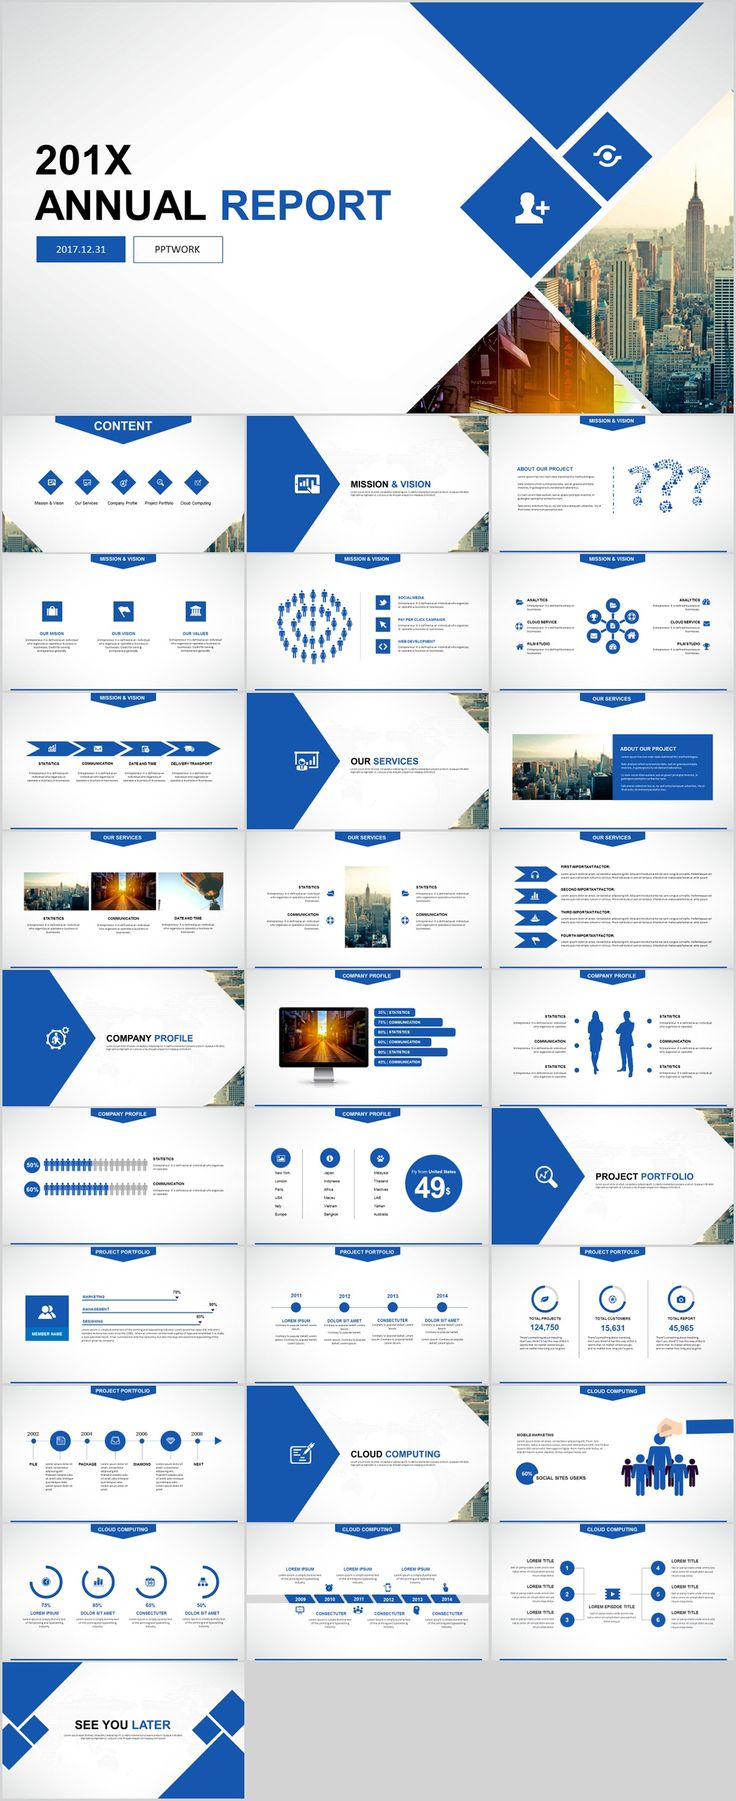 Business Infographic 29 Blue Annual Report Presentation